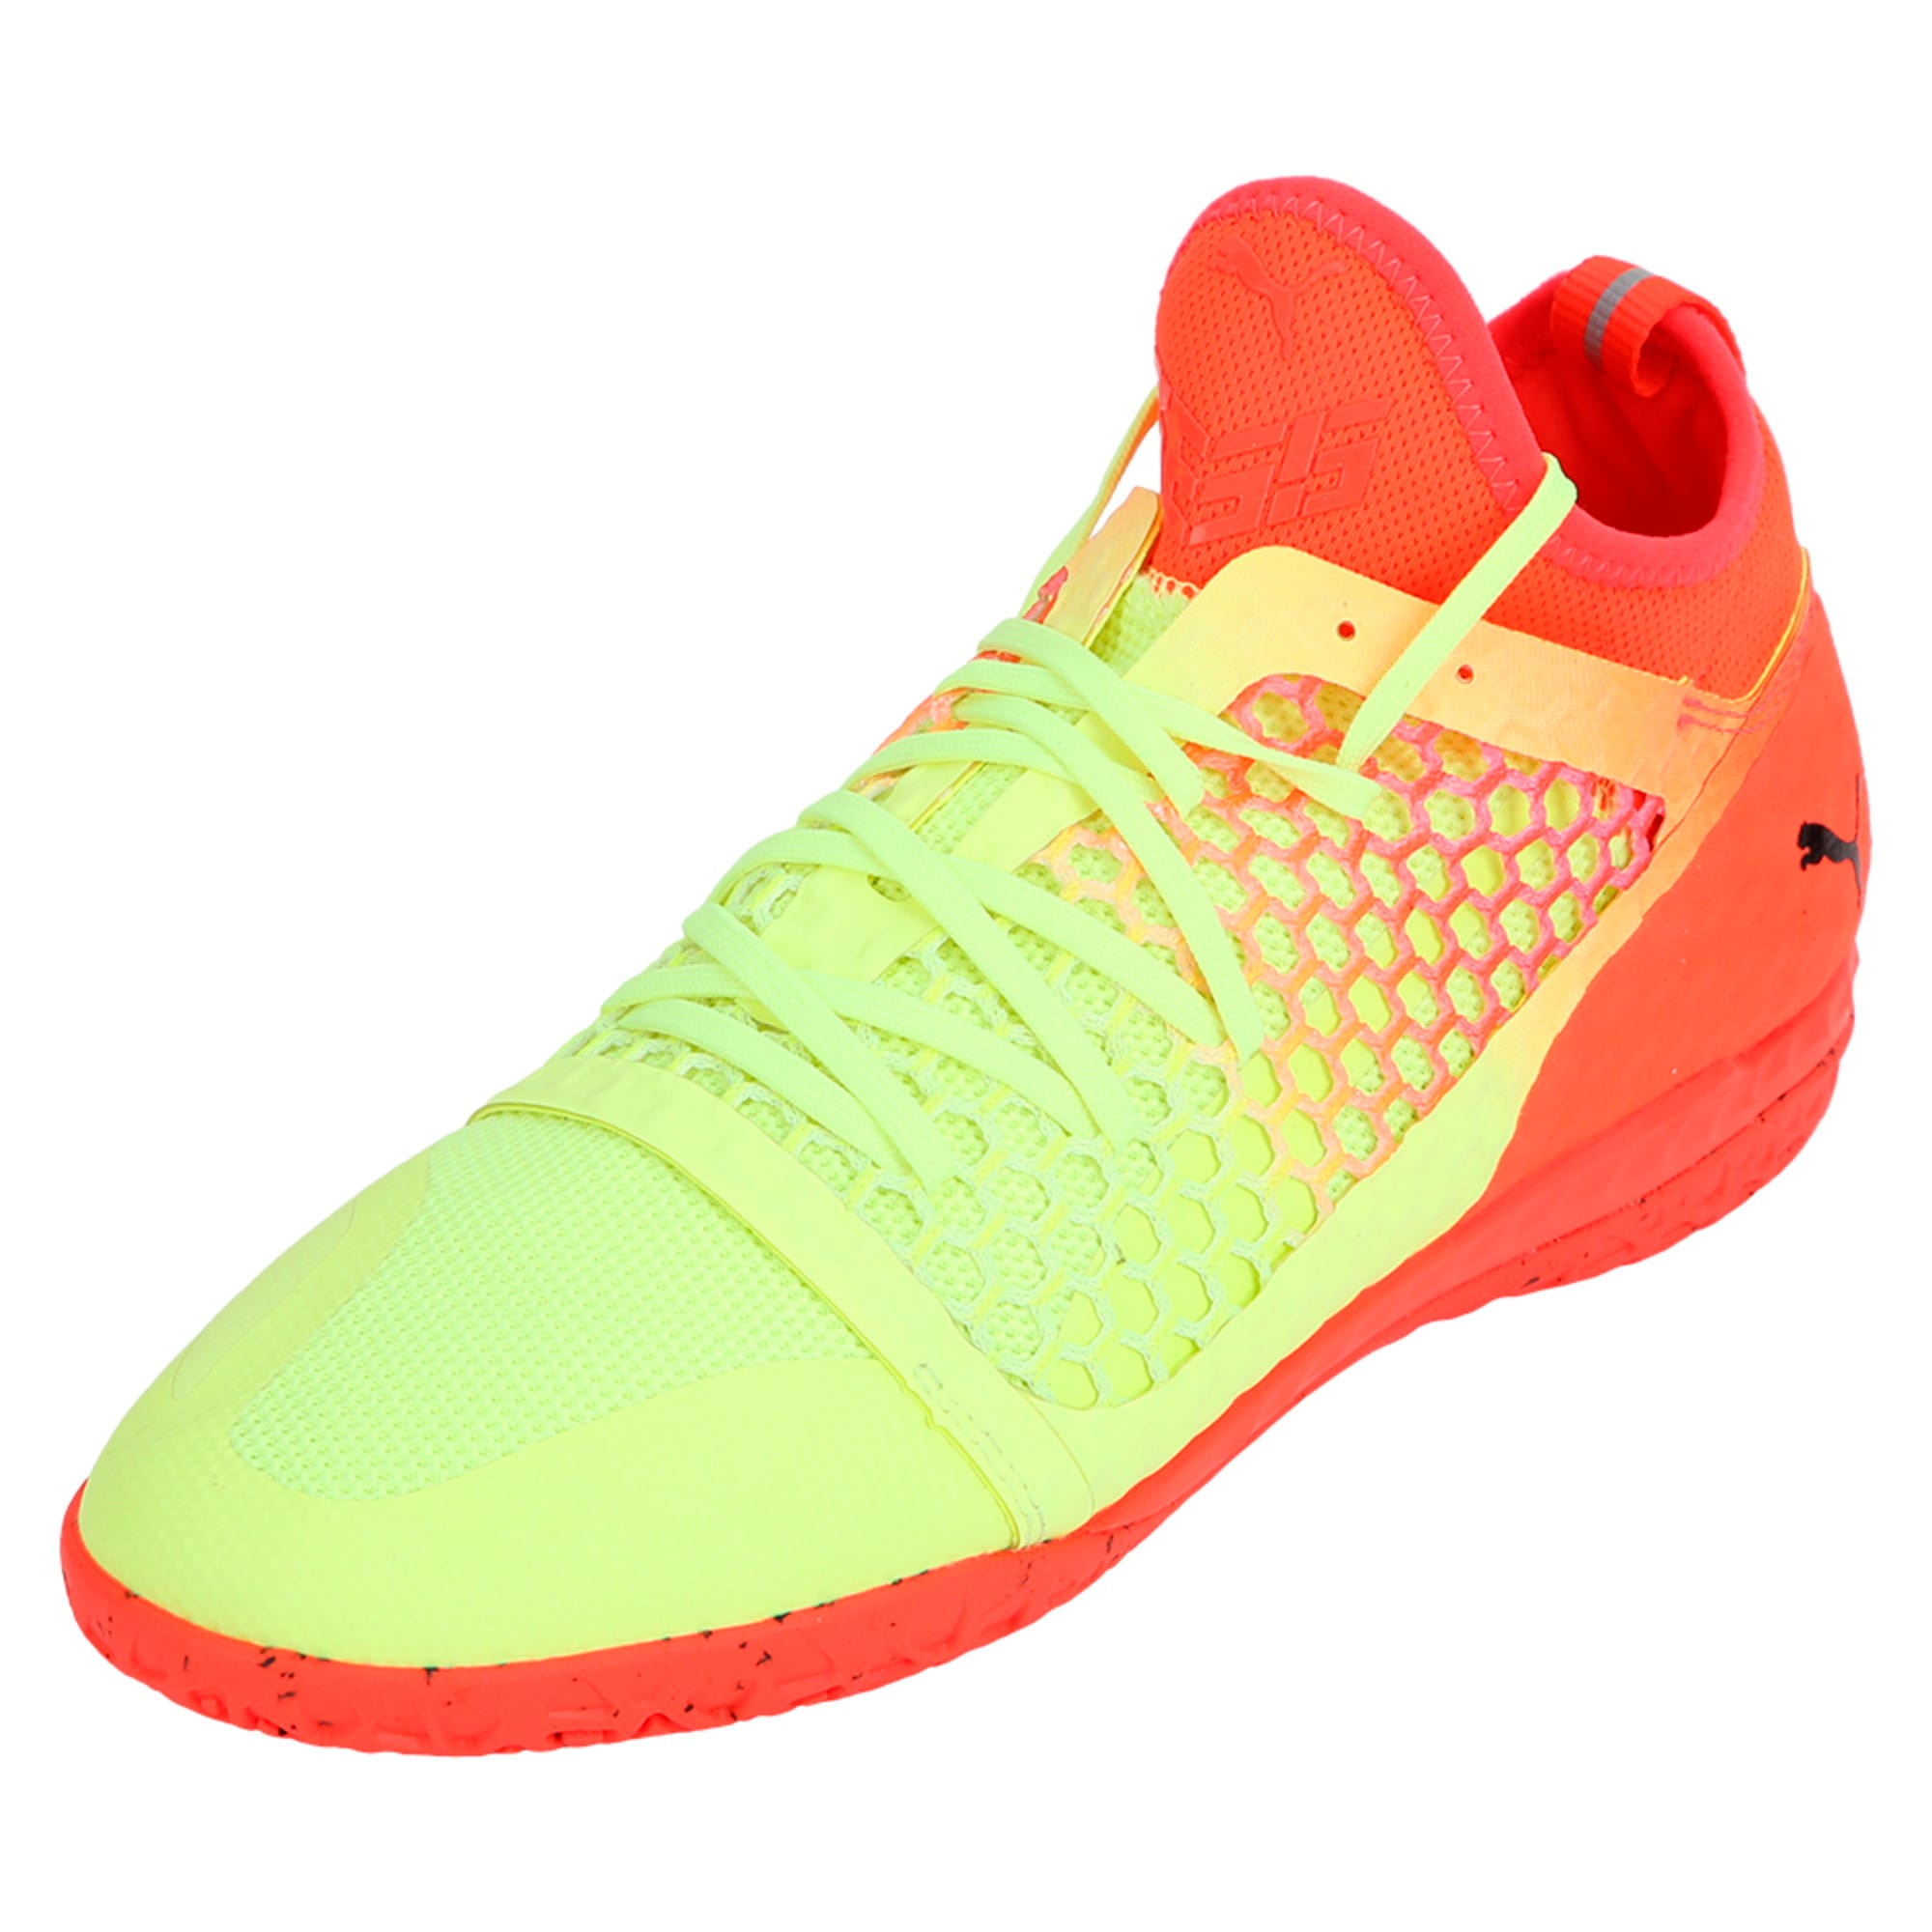 Thumbnail 1 of 365 IGNITE NETFIT CT Men's Court Football Boots, Yellow-Red-Black, medium-IND